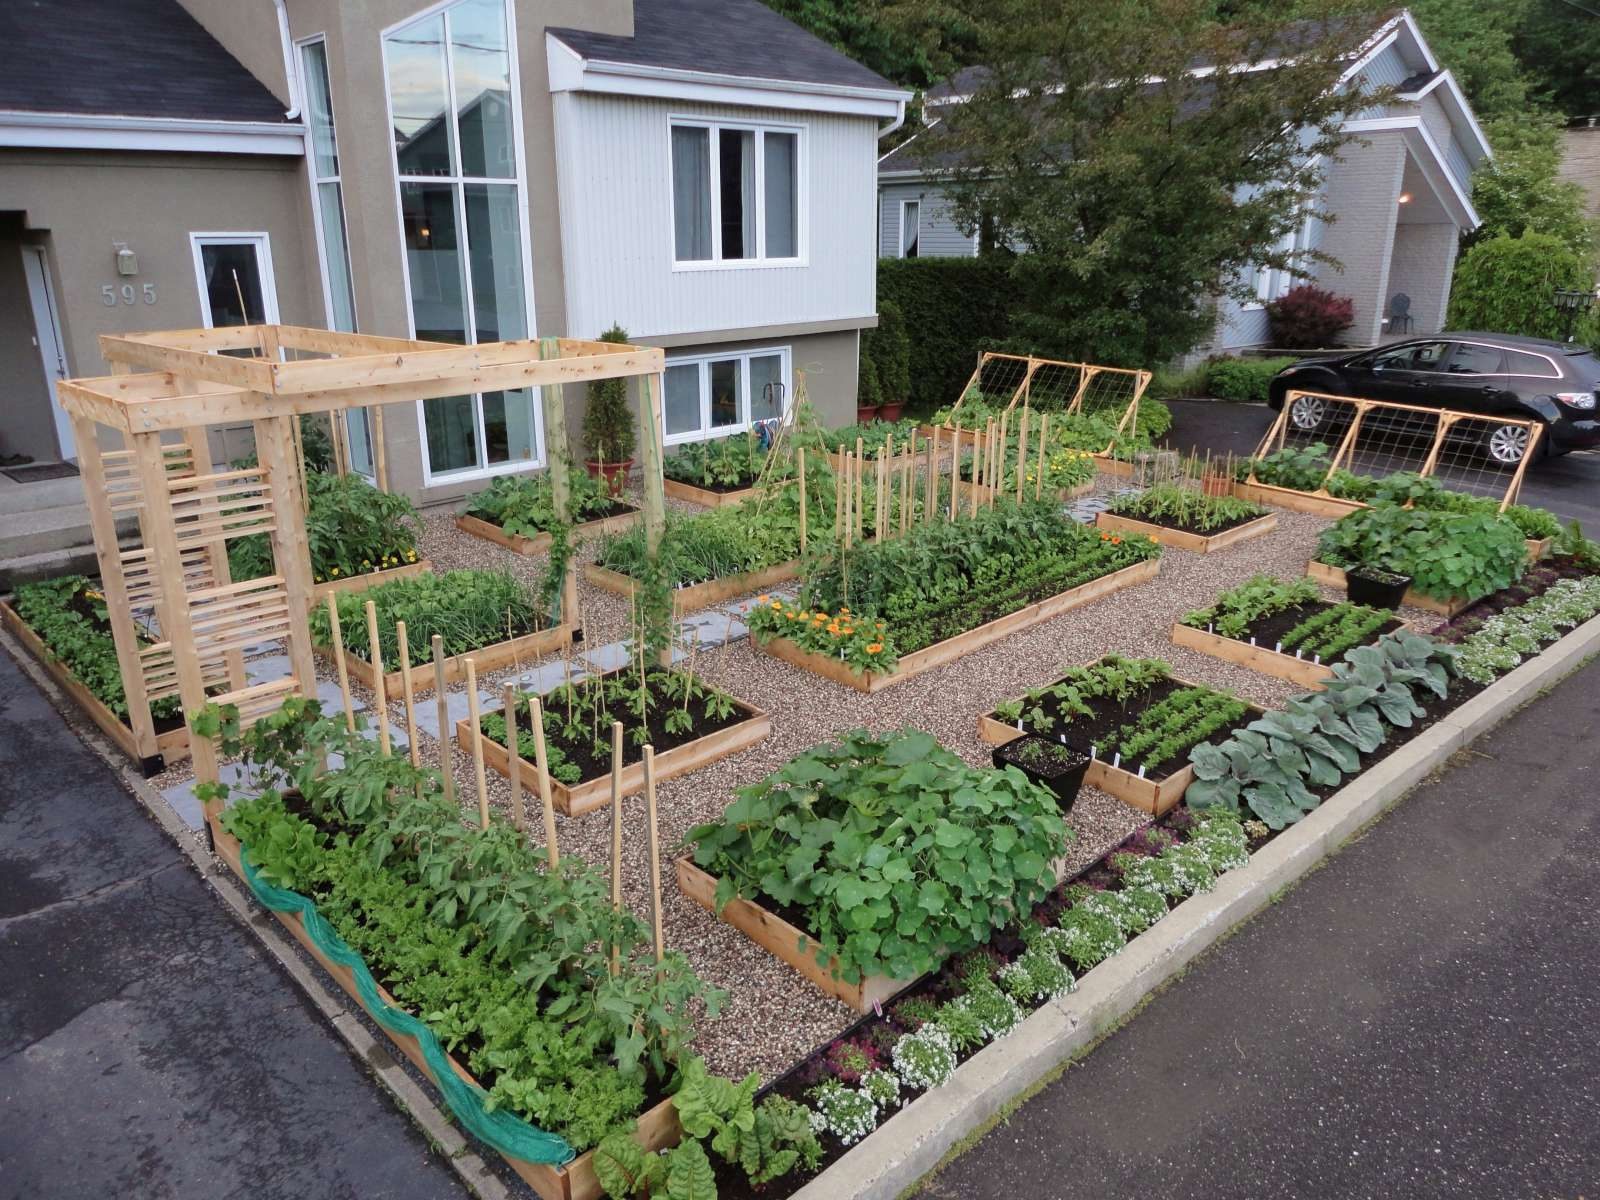 How to make vegetable garden bed large and beautiful photos